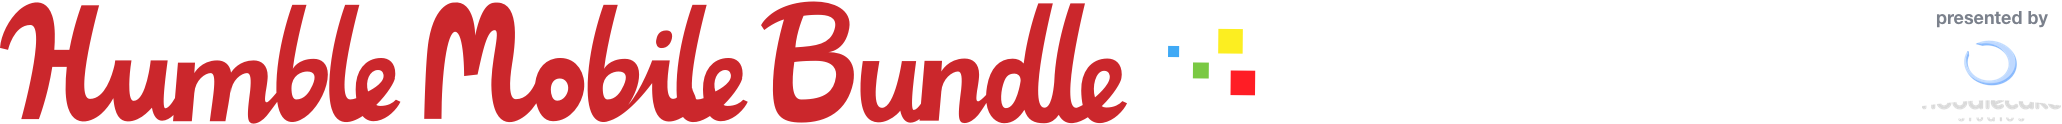 The Humble Mobile Bundle: Indie Hits presented by Noodlecake